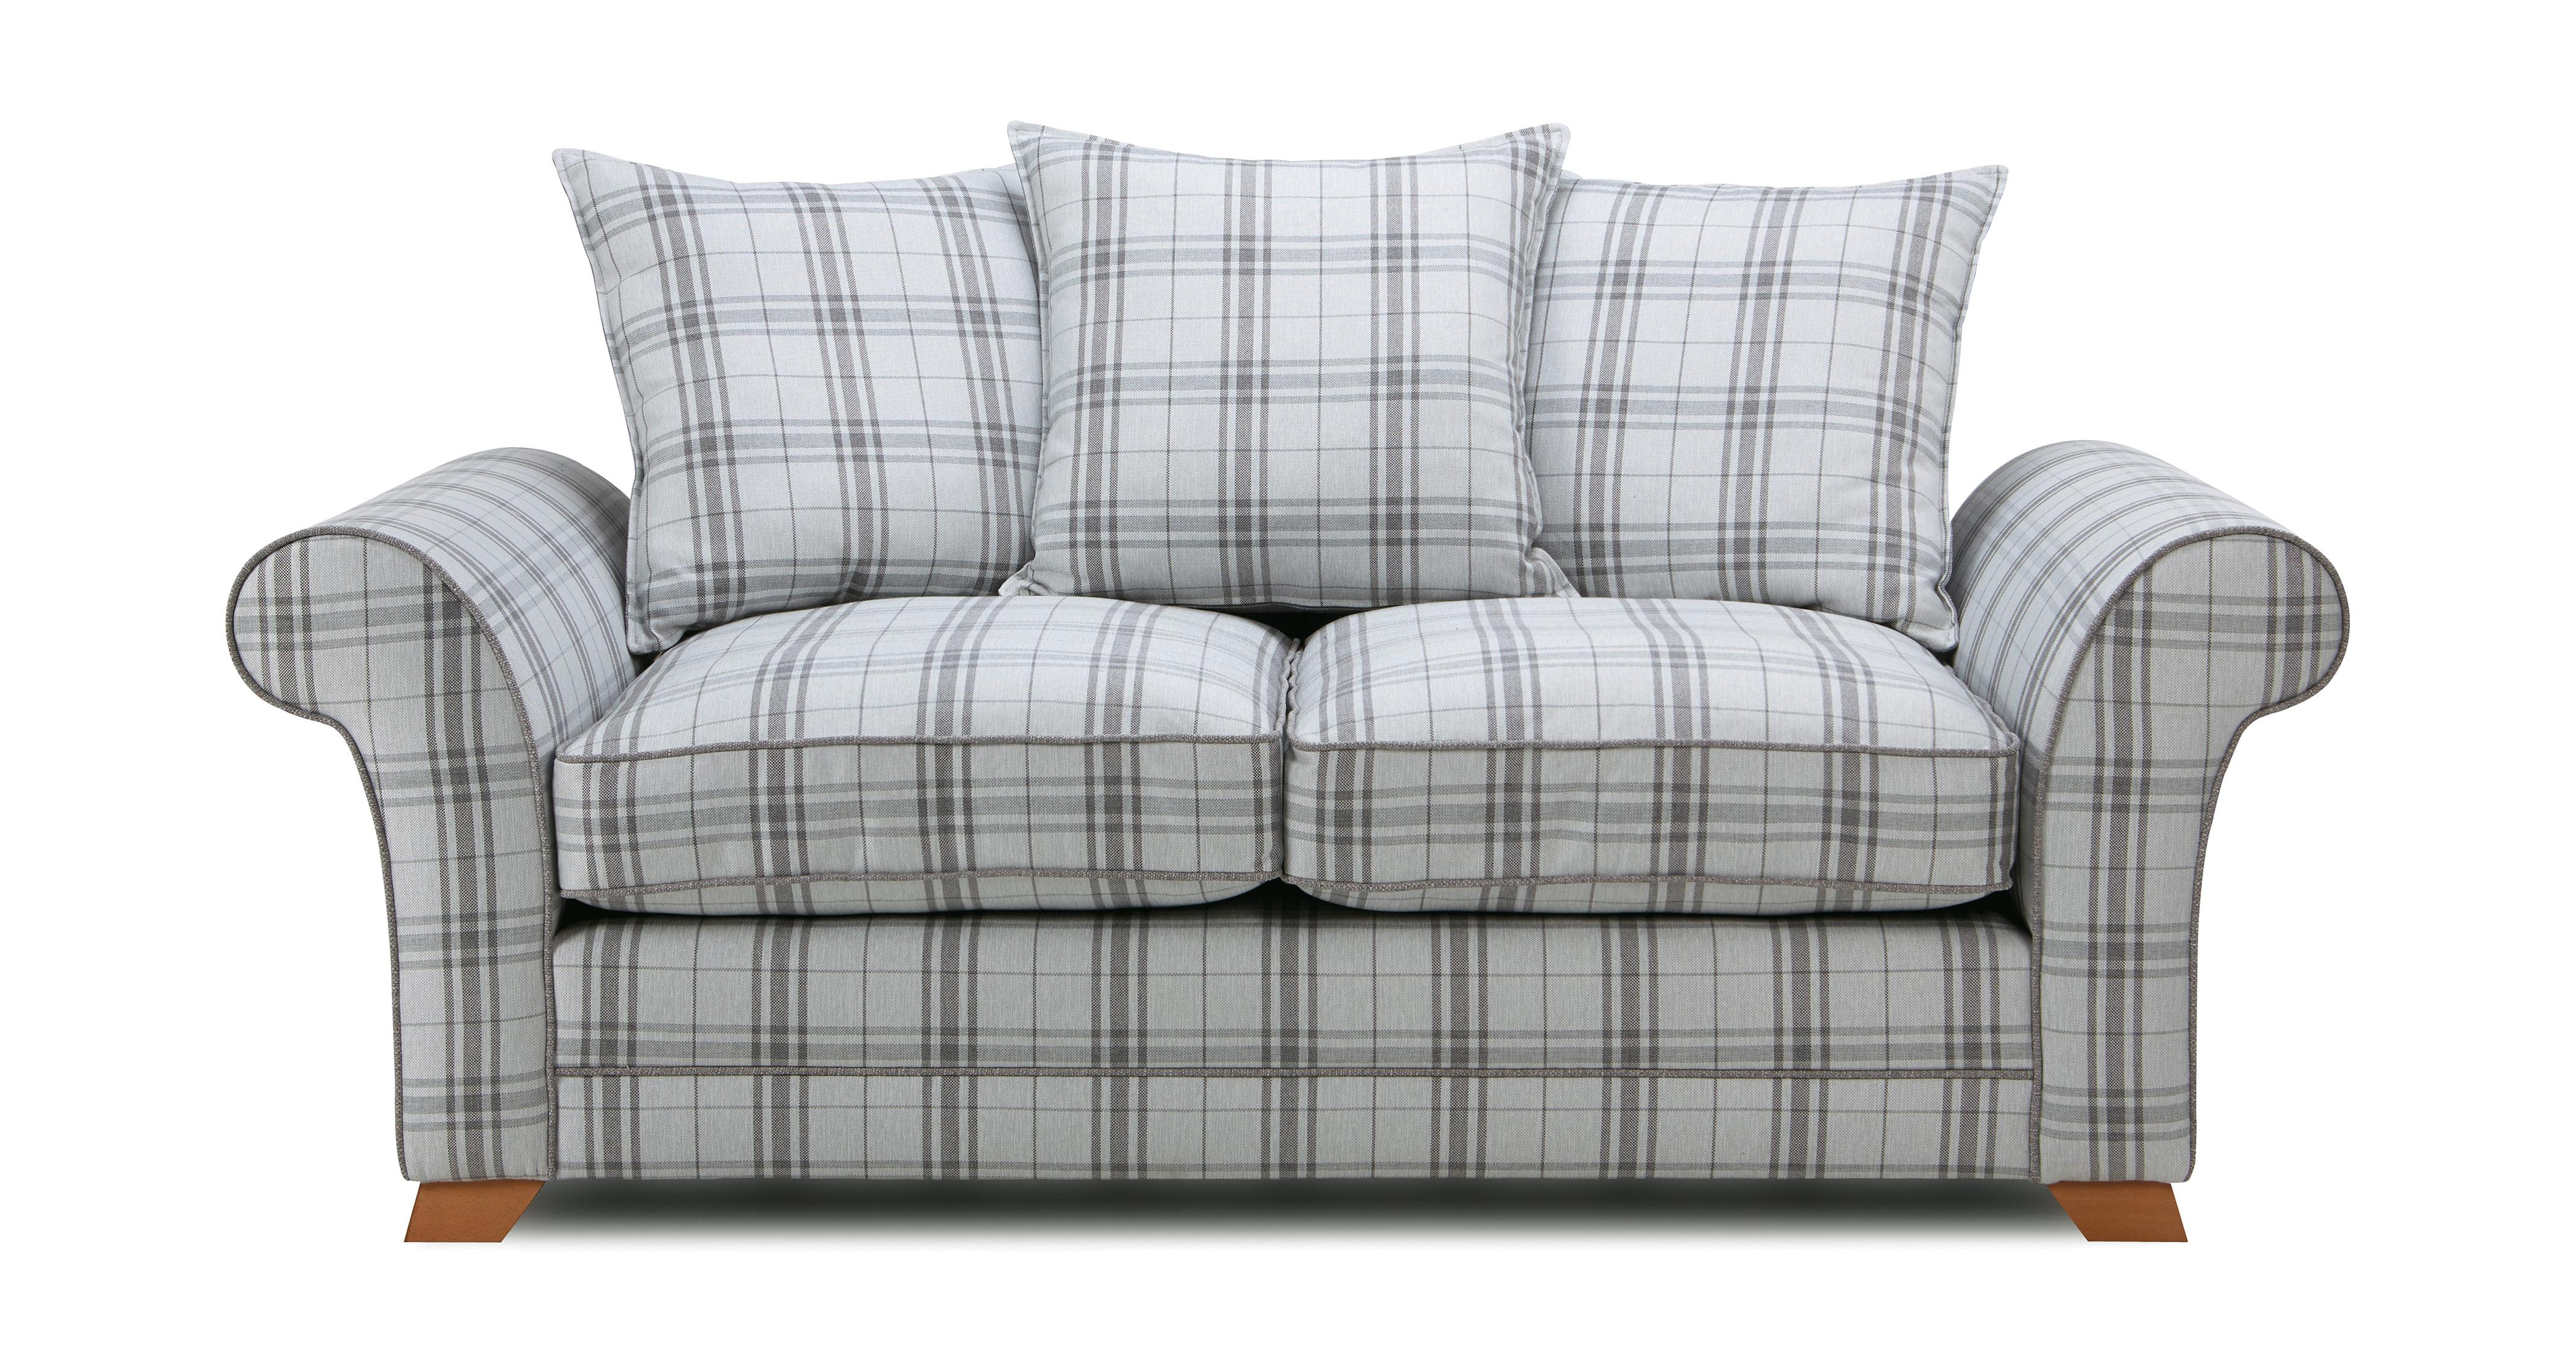 Elliott Plaid 2 Seater Pillow Back Sofa Arran | DFS